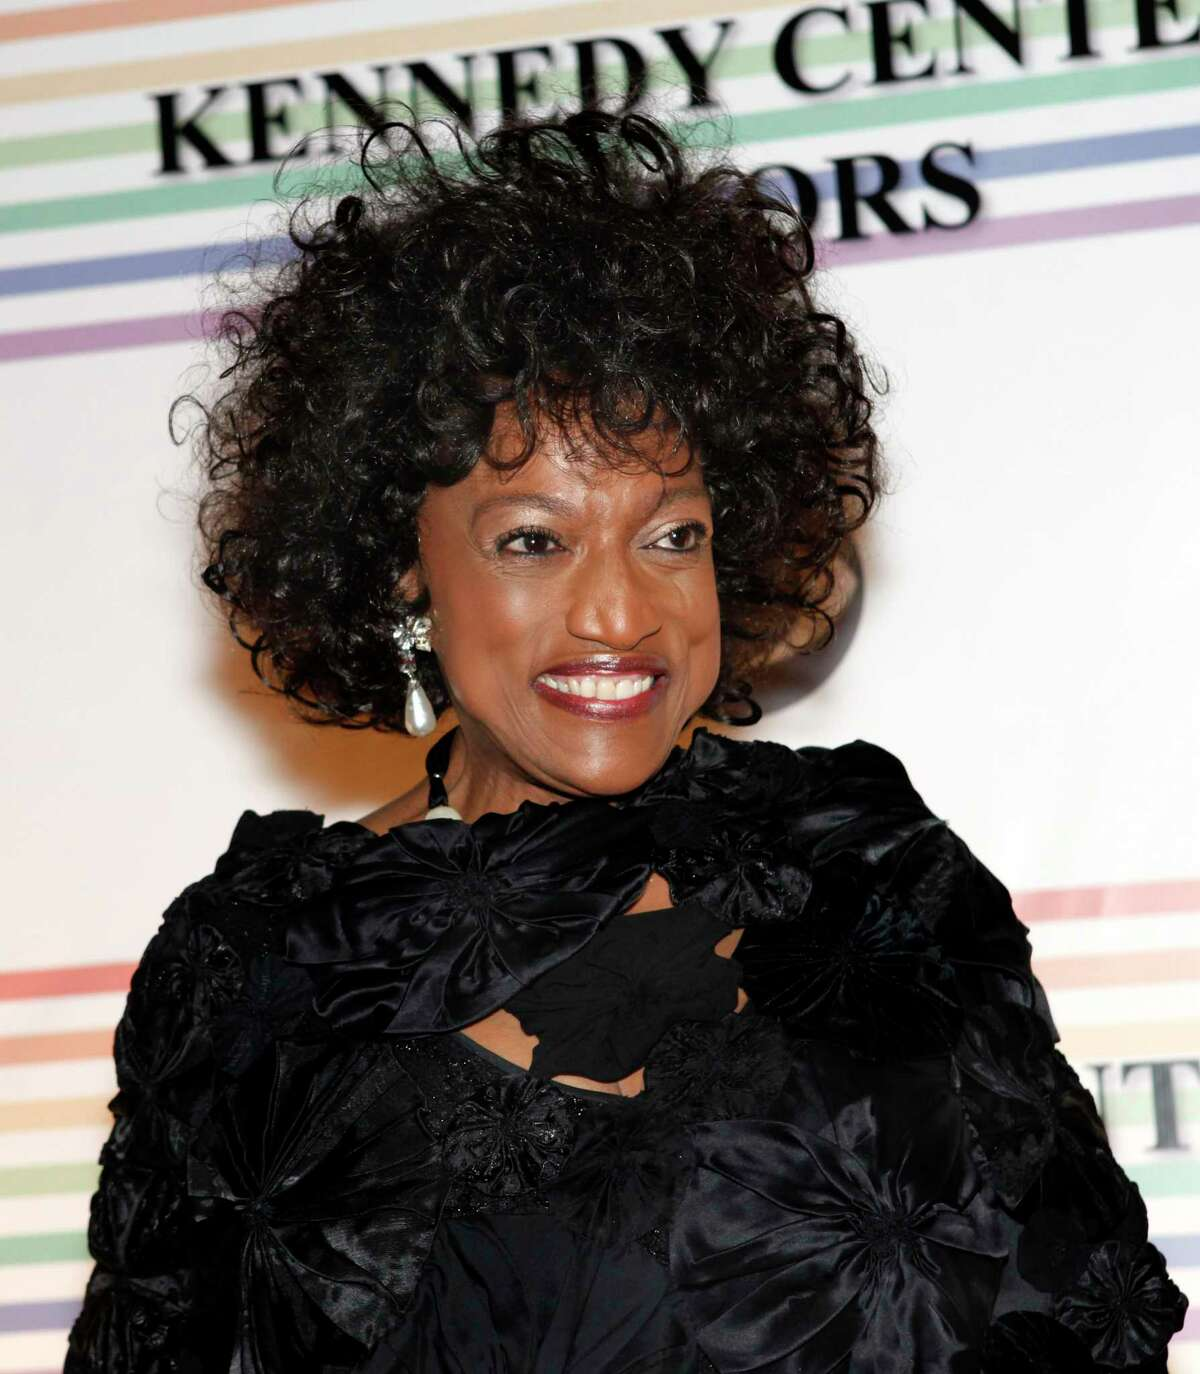 FILE - This Dec. 5, 2010 file photo shows opera singer Jessye Norman at the Kennedy Center Honors in Washington. Norman died, Monday, Sept. 30, 2019, at Mount Sinai St. Lukea€™s Hospital in New York. She was 74. (AP Photo/Jacquelyn Martin, File)